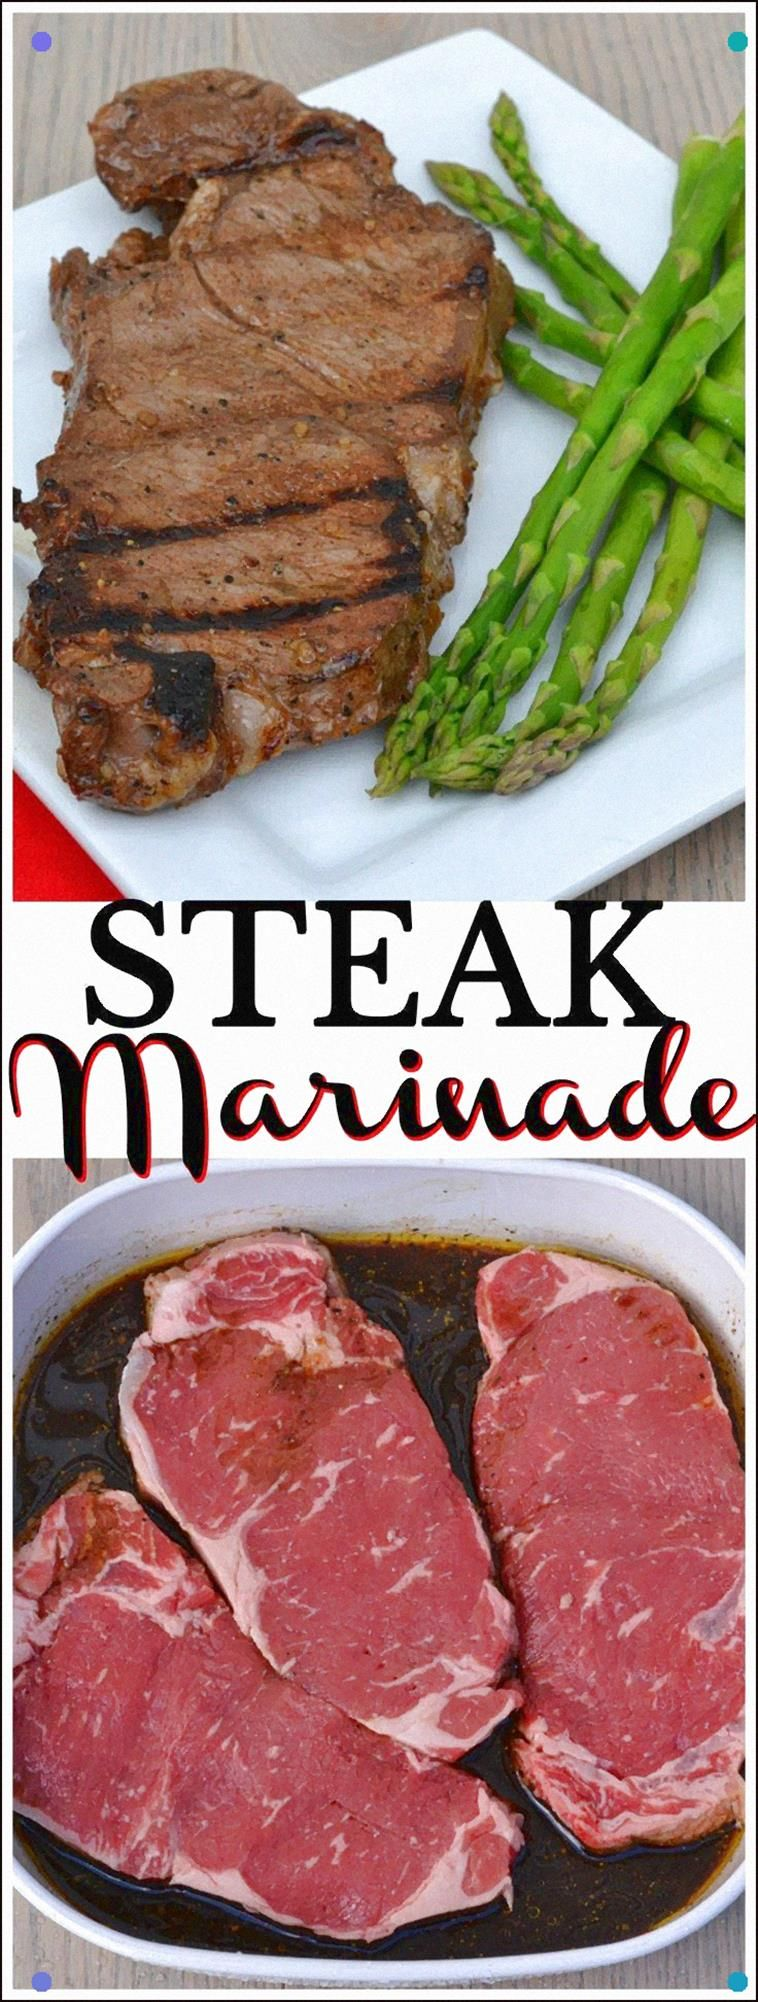 A Quick, Simple and Delicious Steak Marinade Made With Basic, On Hand Ingredients #Ad #Foodlion #Grilling #Steaks Foodlion